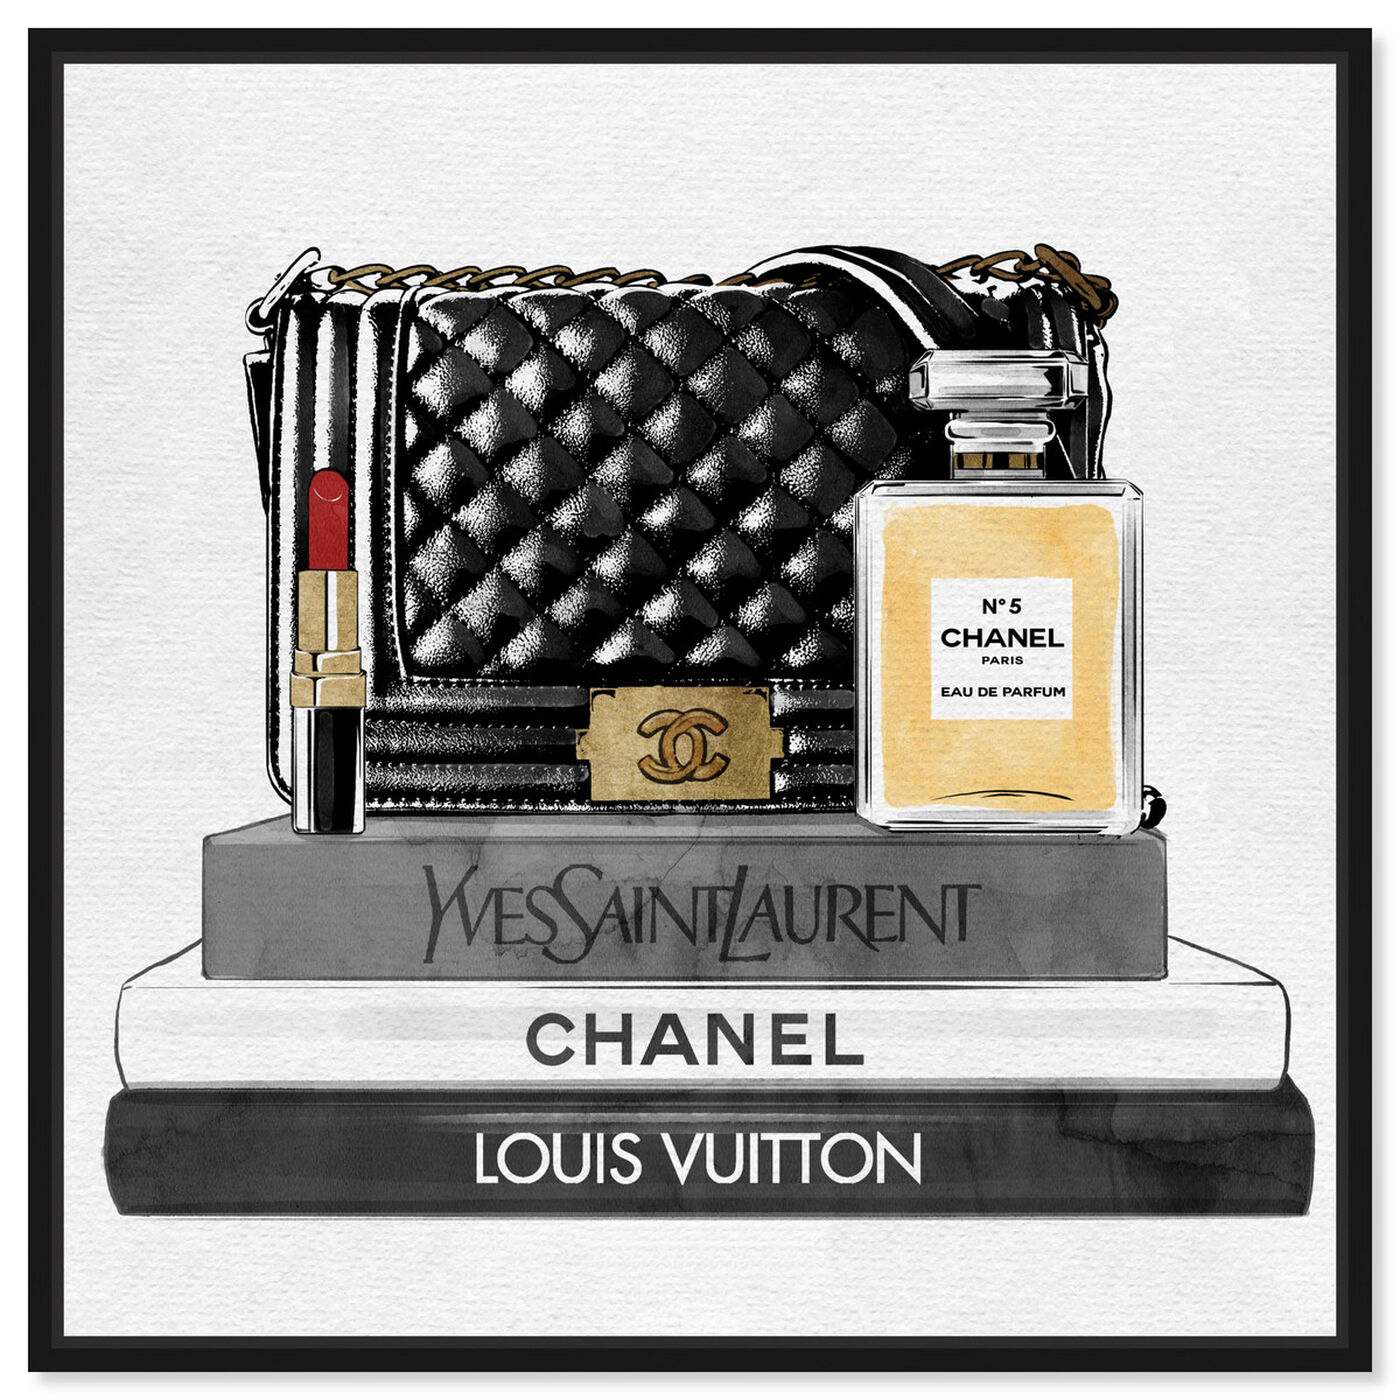 Front view of Black Paris Handbag and Books featuring fashion and glam and handbags art.